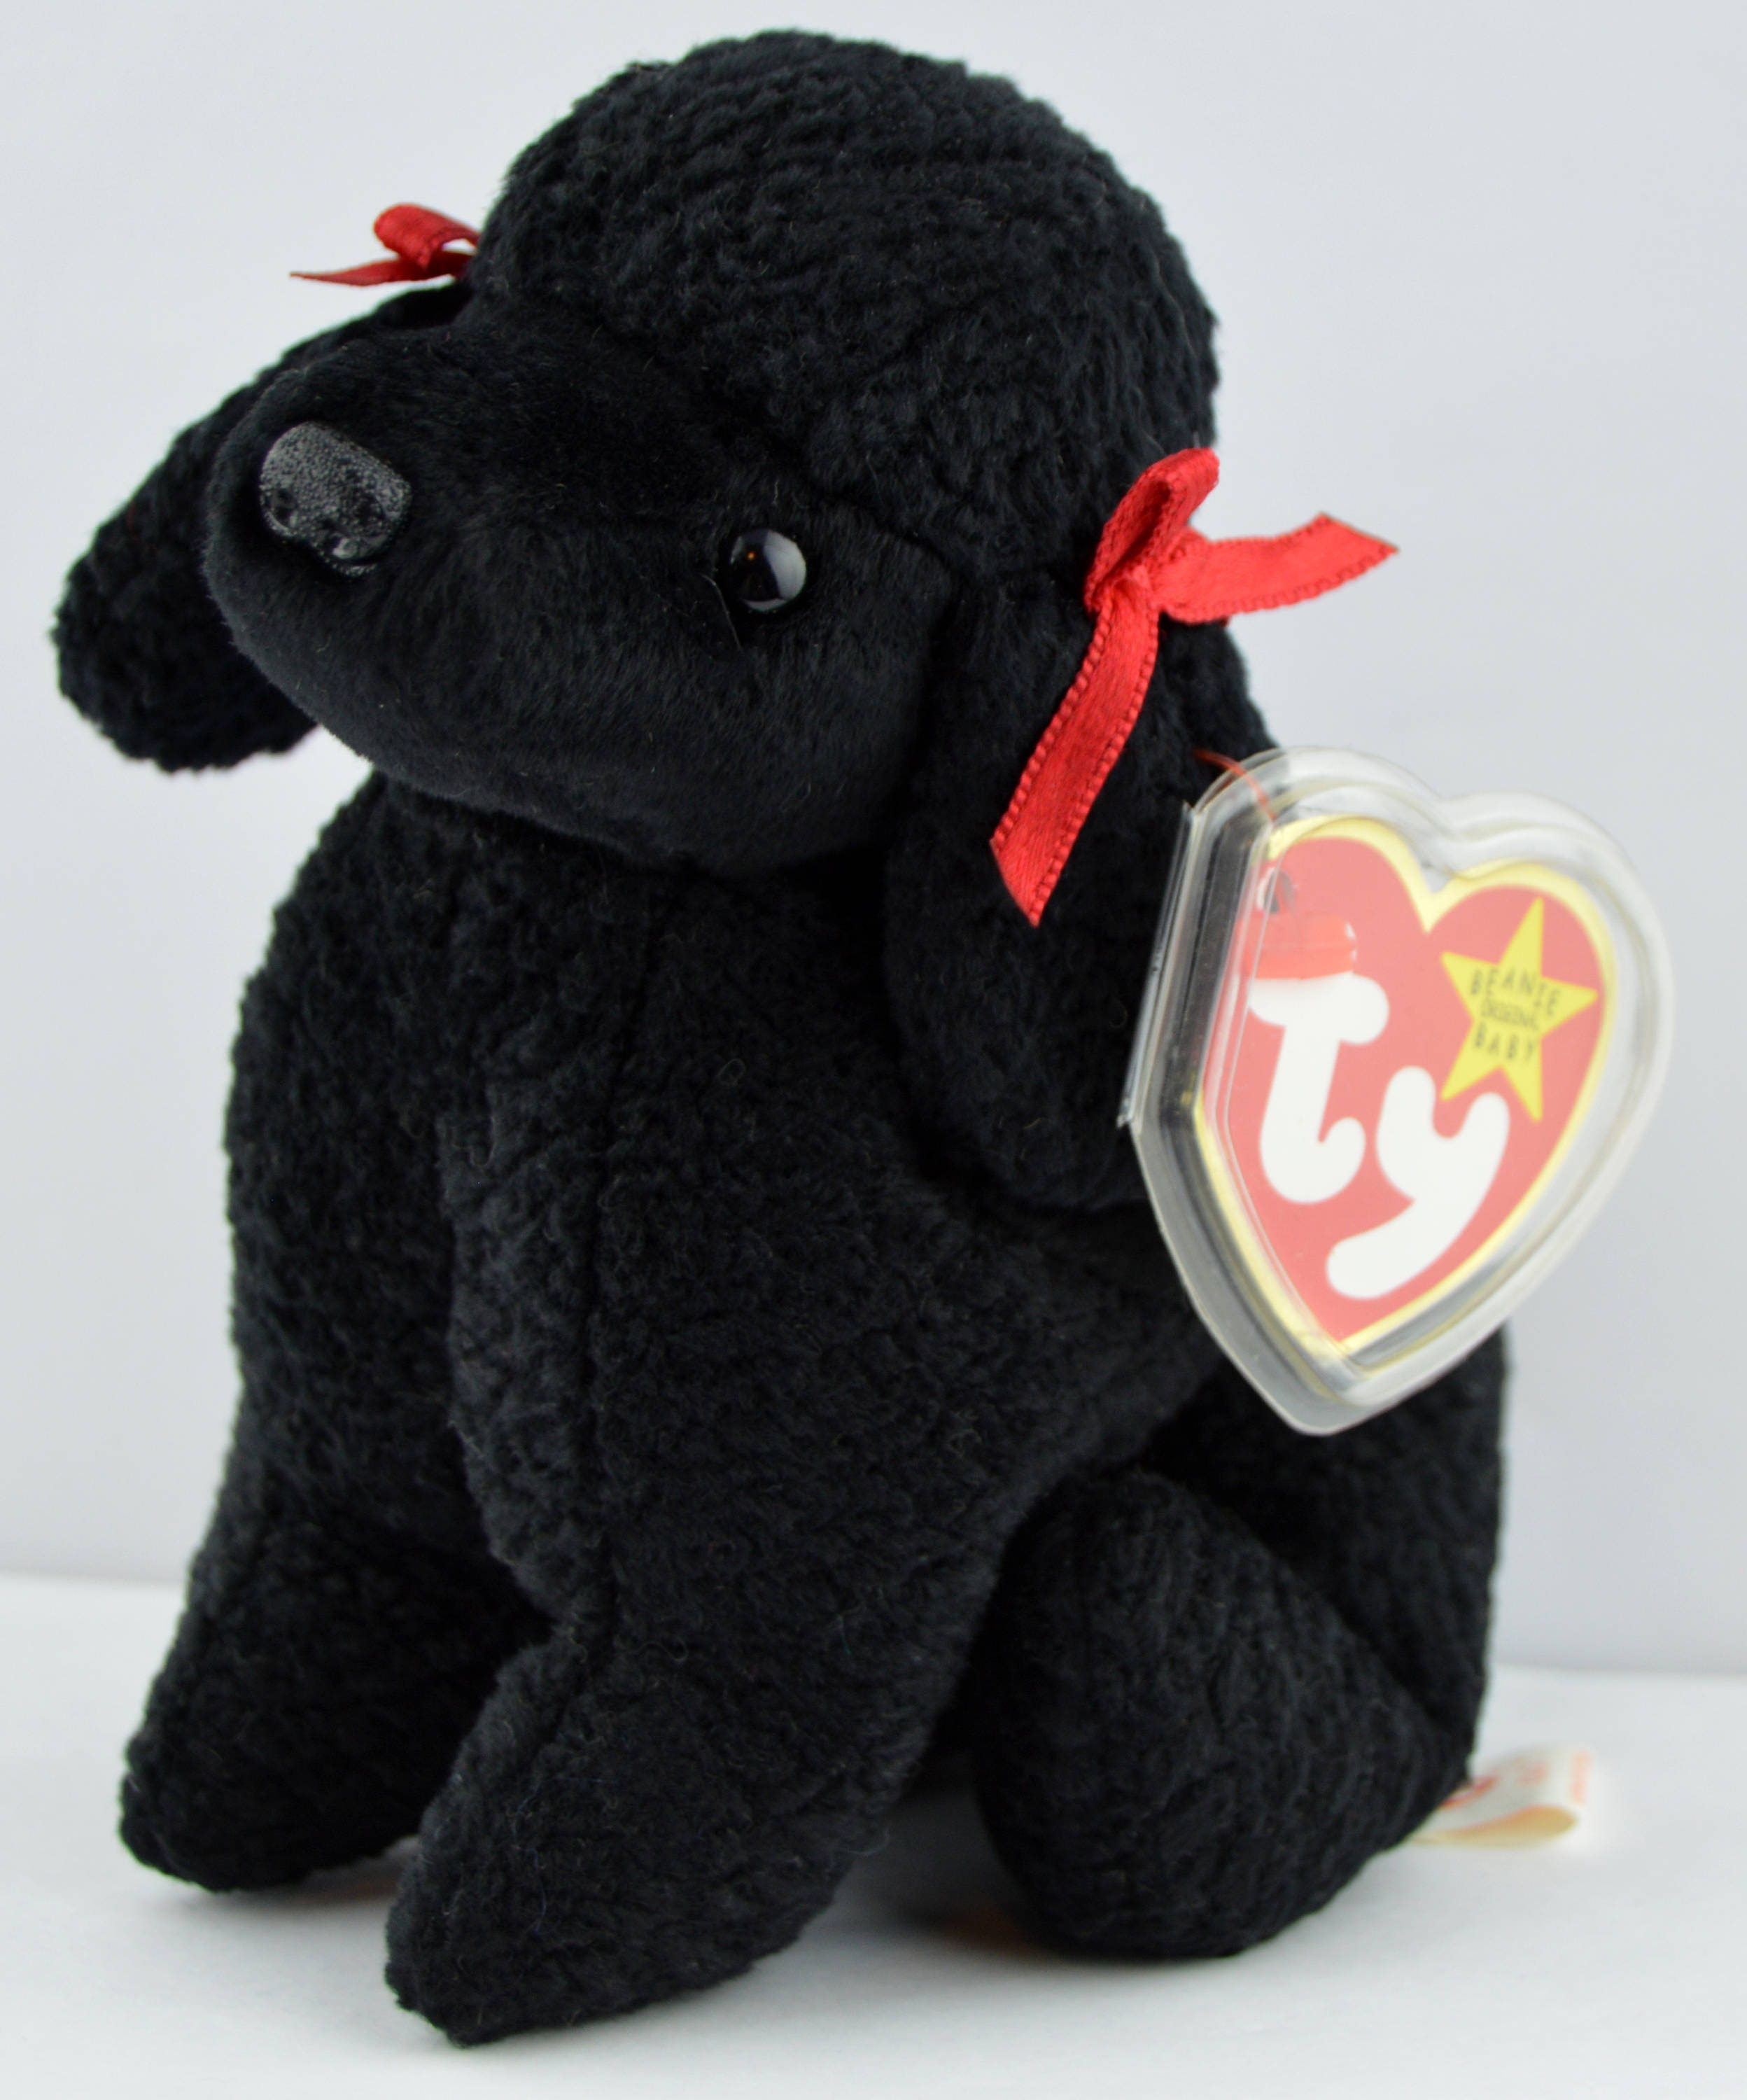 bc9dfda5e2e Ty Gigi the Black Toy Poodle Dog Beanie Baby Retired